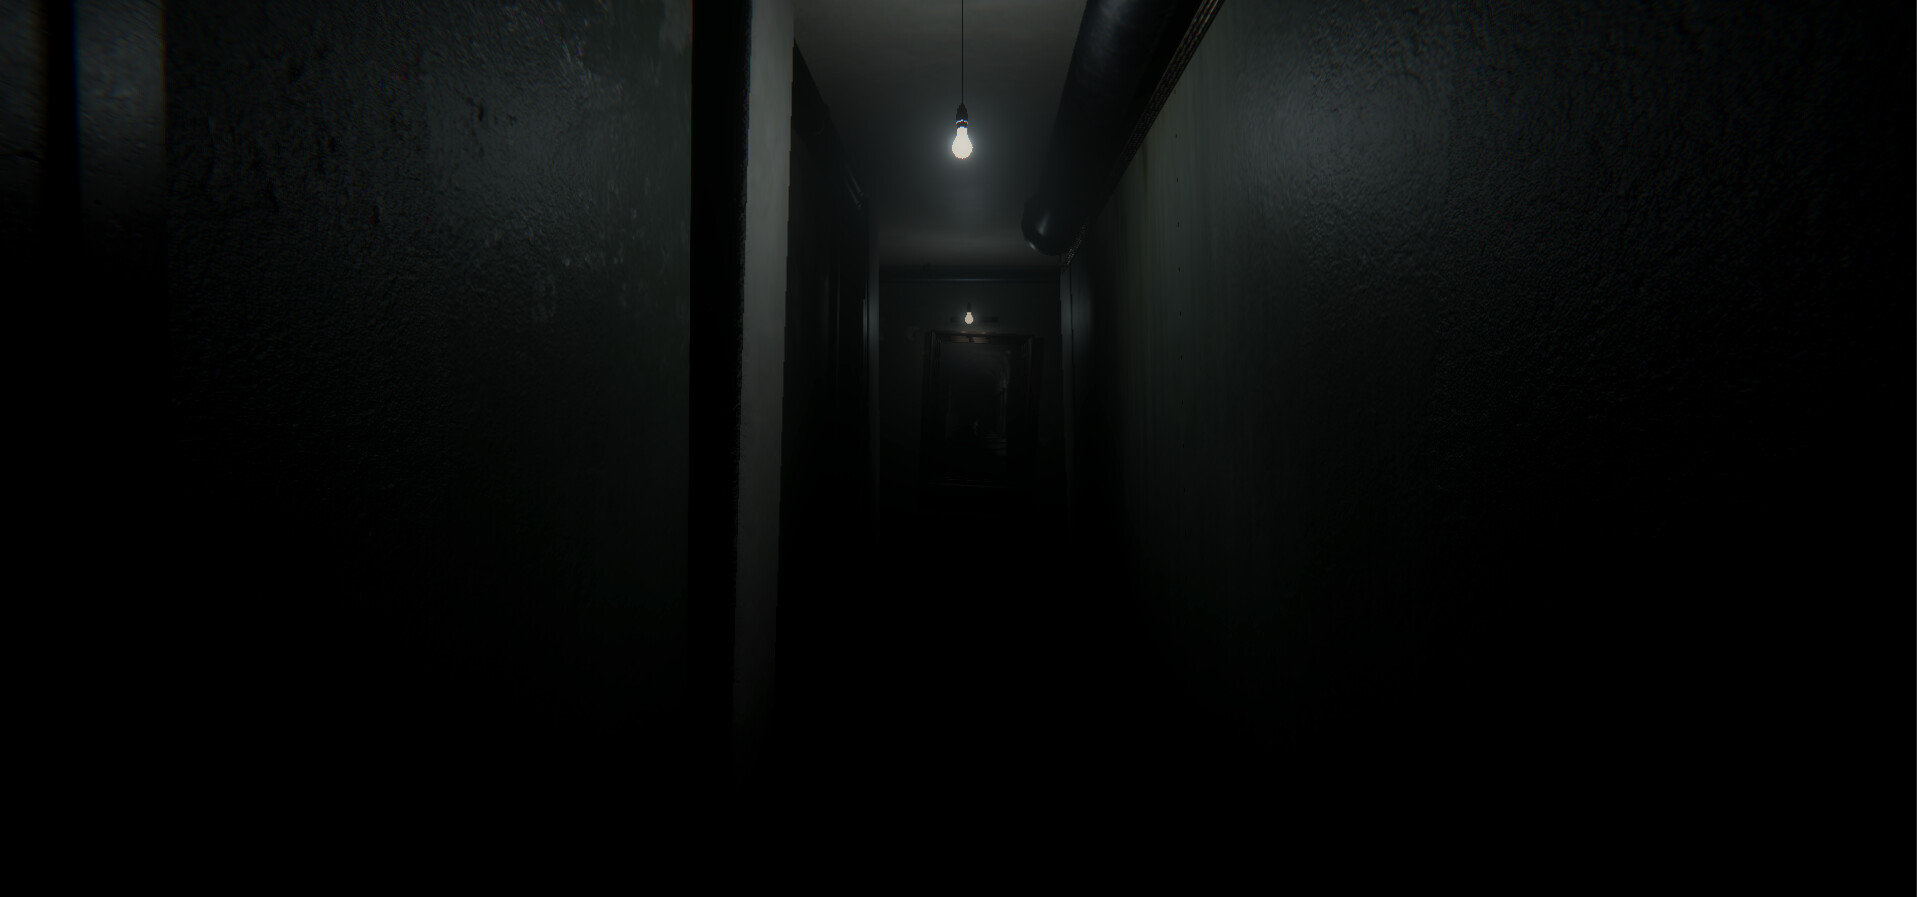 This is the corridor in another loop with a creepier mood.